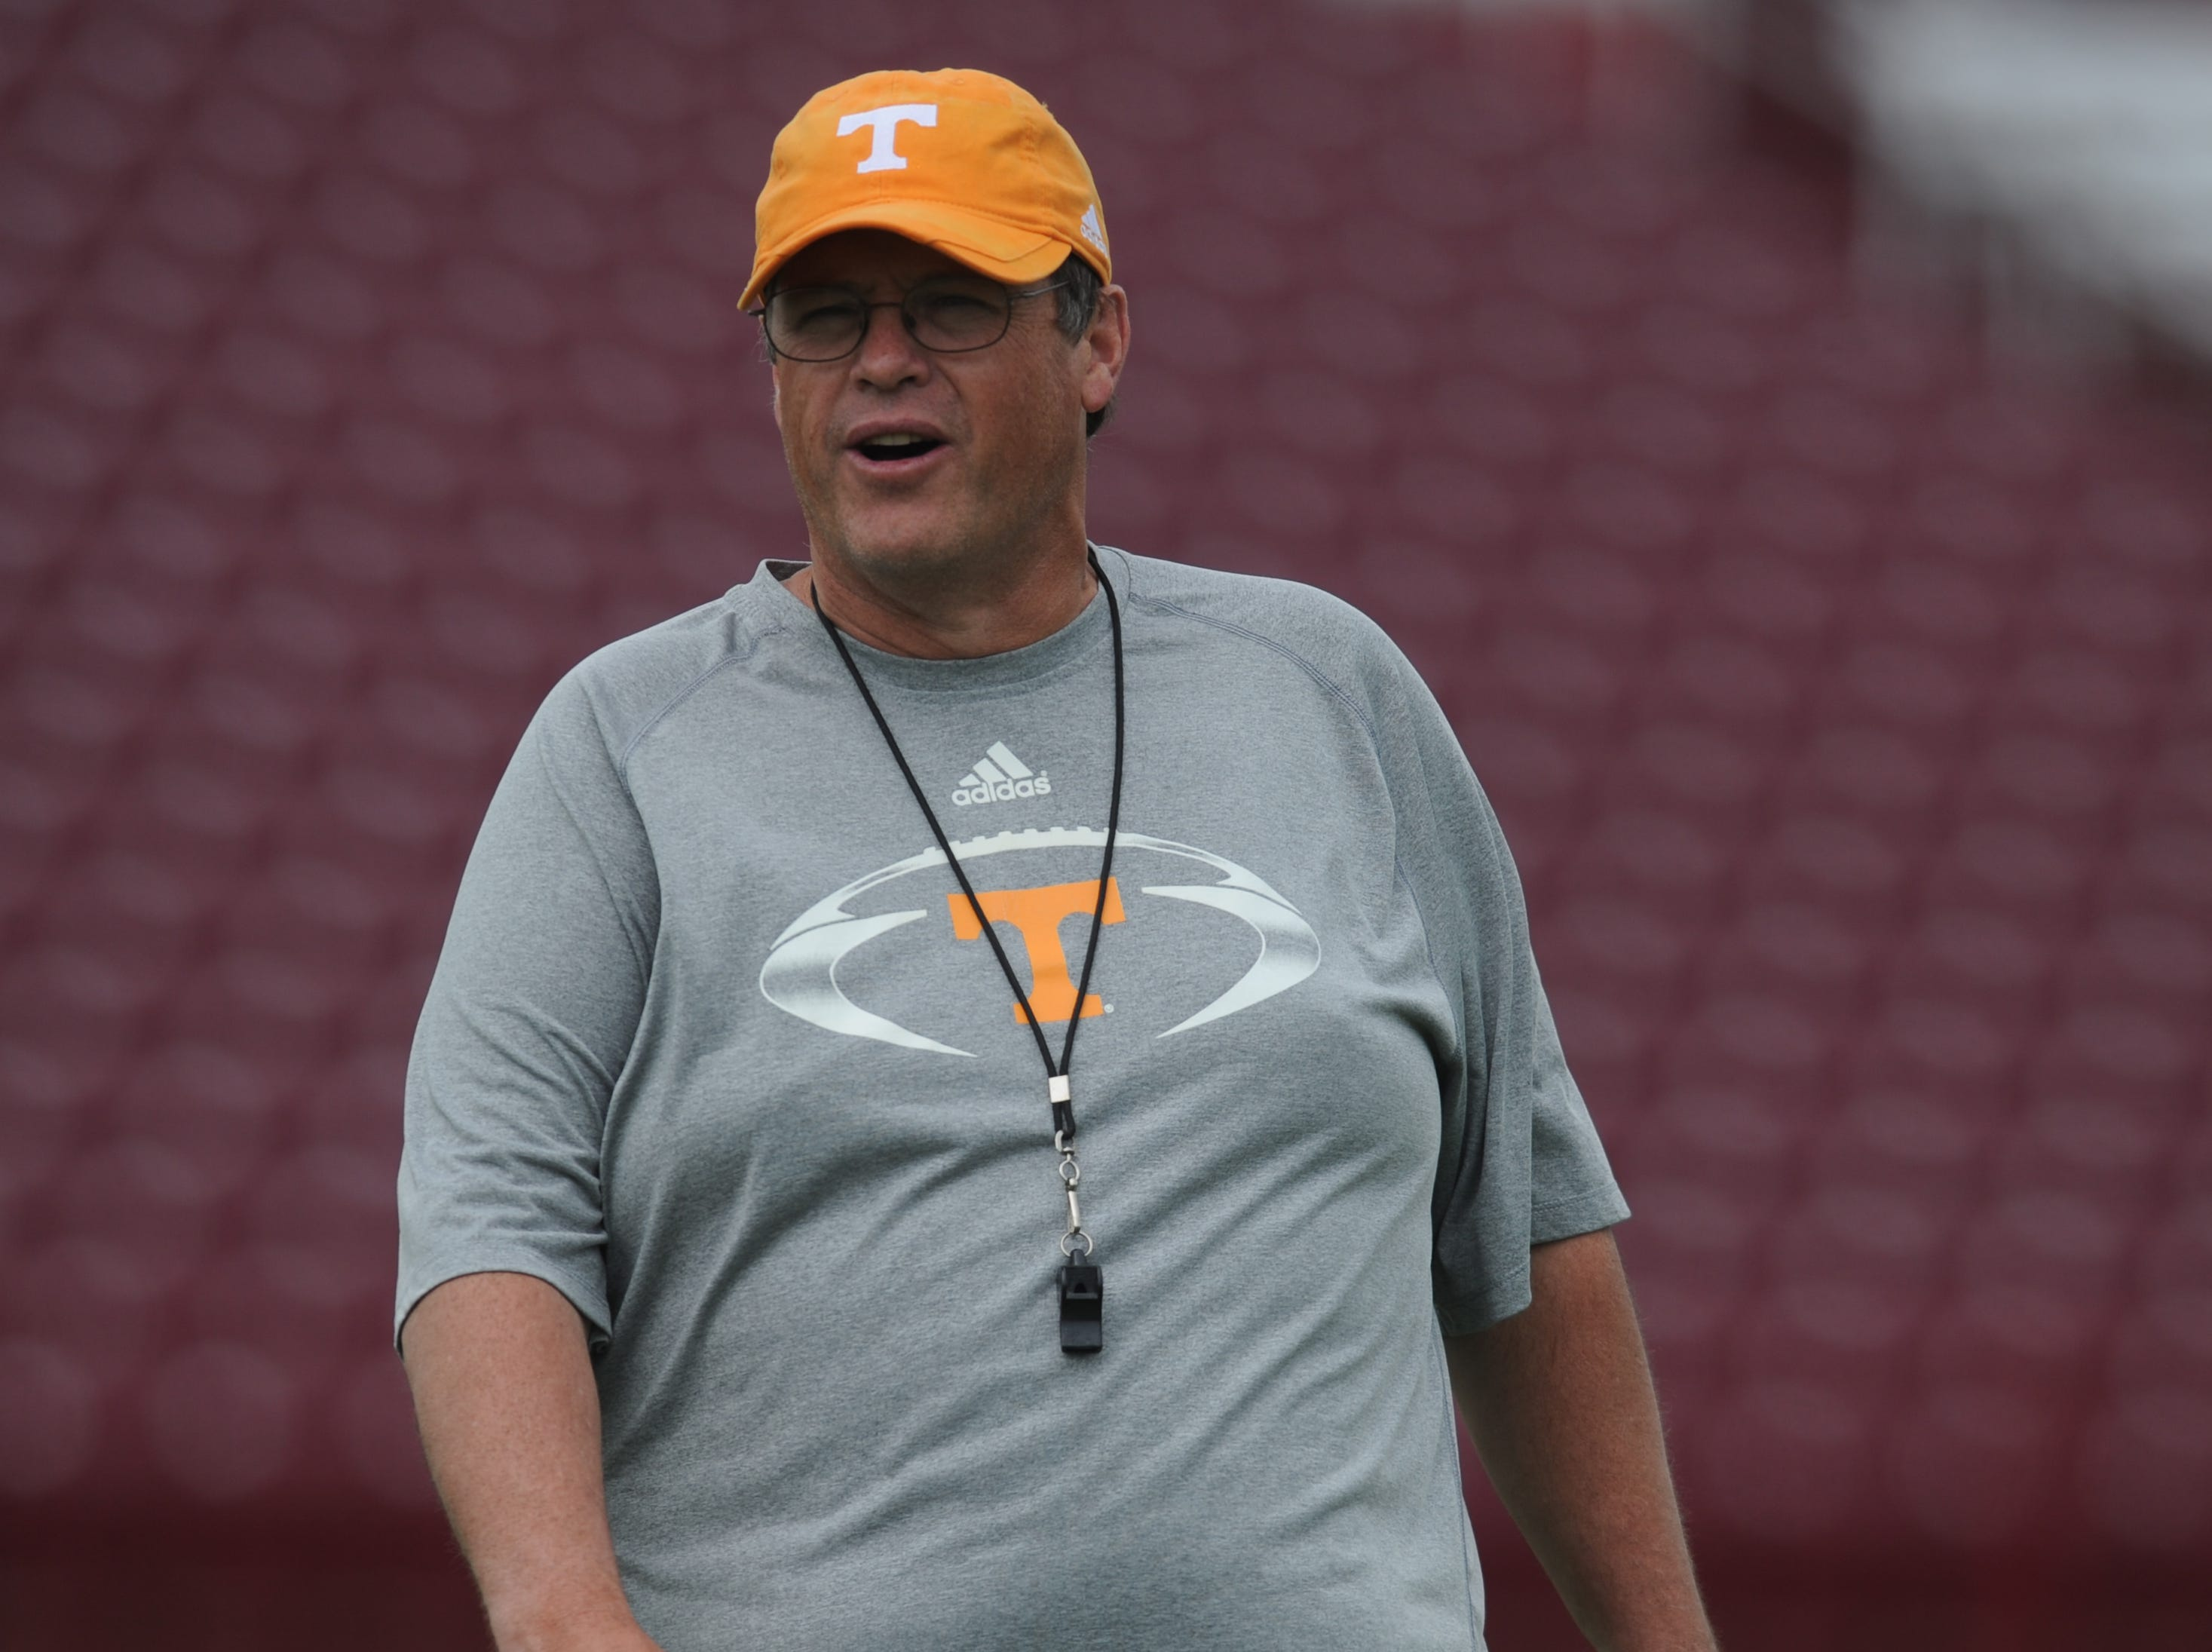 Tennessee offensive coordinator Jim Chaney calls to his players during practice at Science Hill High School's Steve Spurrier Field in Kermit Tipton Stadium in Johnson City, Tenn., Friday, Aug. 10, 2012.